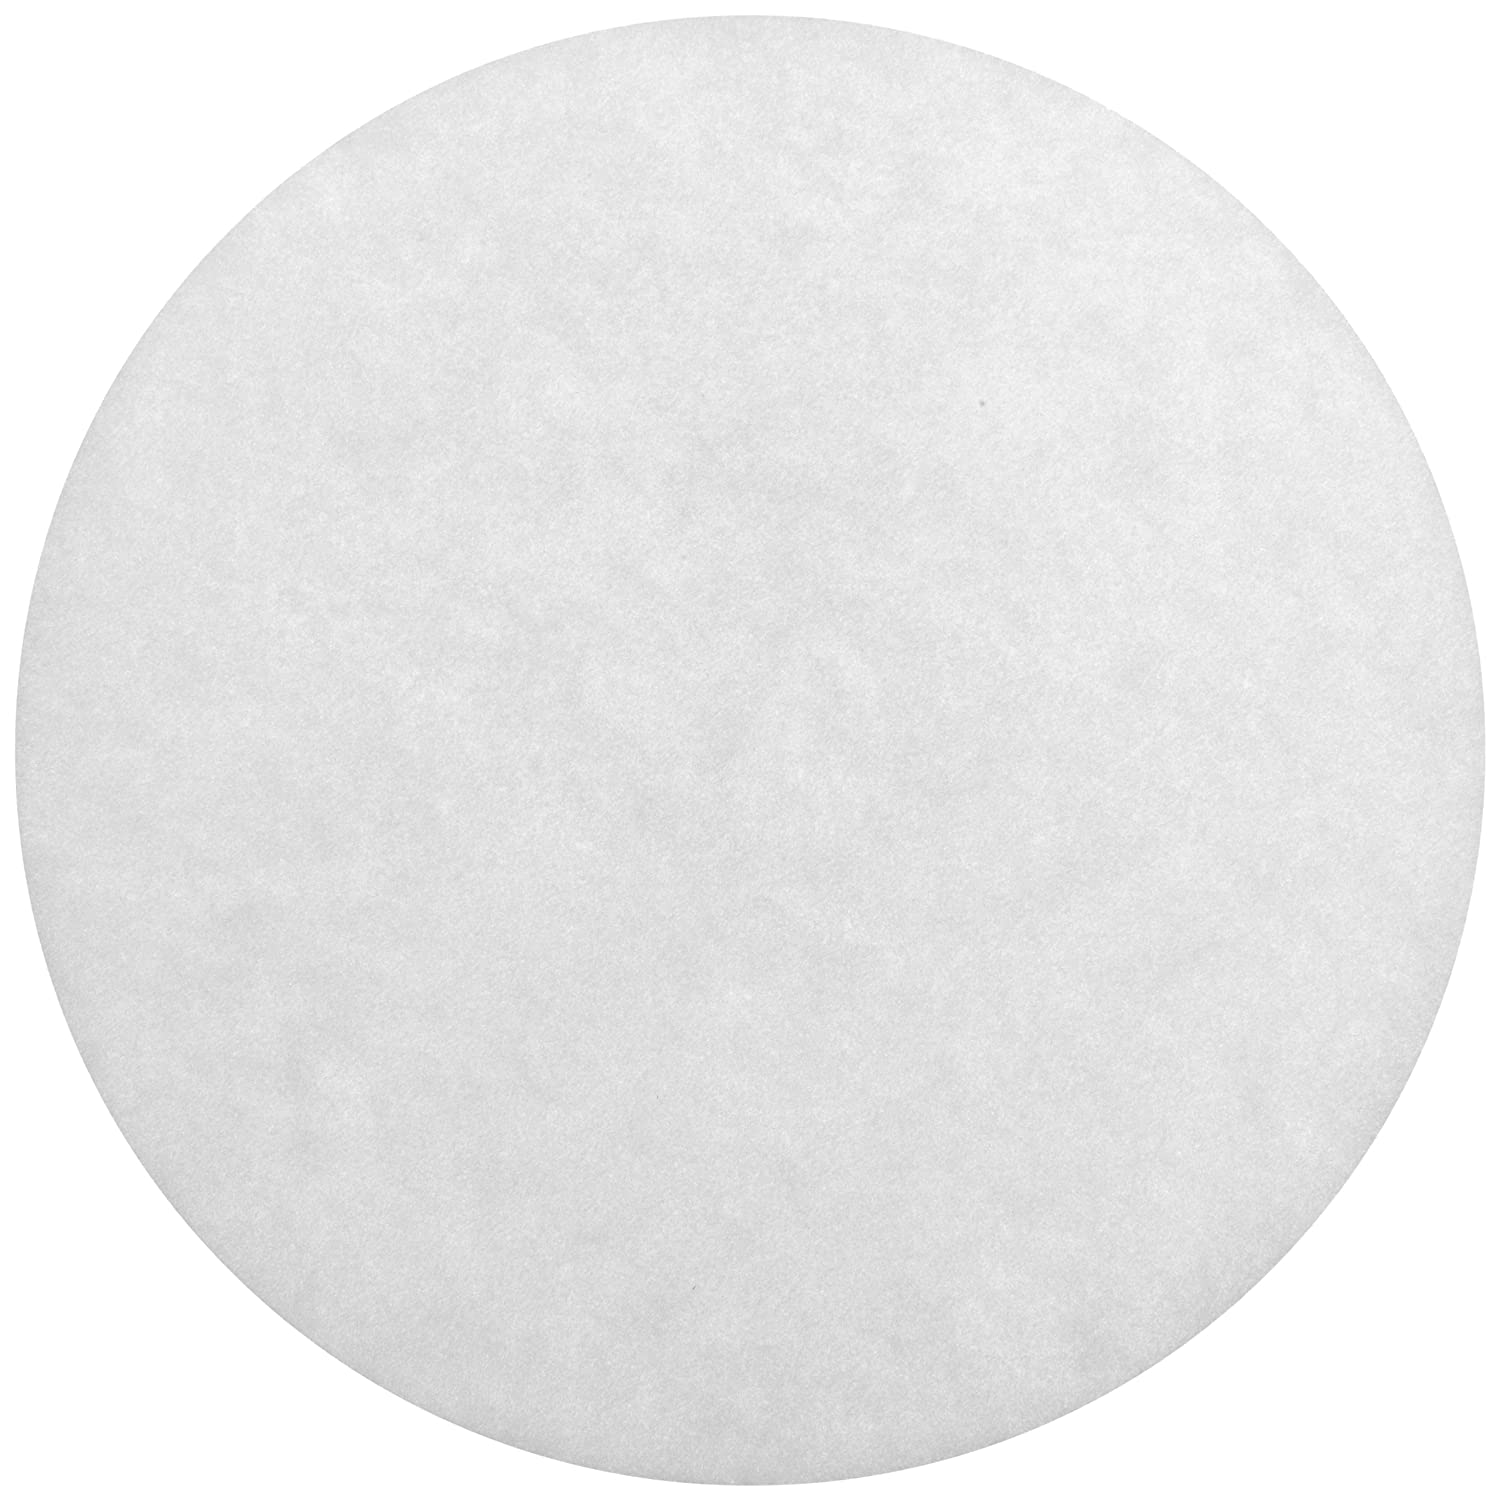 Whatman 800284 Polycarbonate Hydrophillic Nuclepore Track-Etched Membrane Filters, 19mm Diameter, 0.8 Micron (Pack of 100)